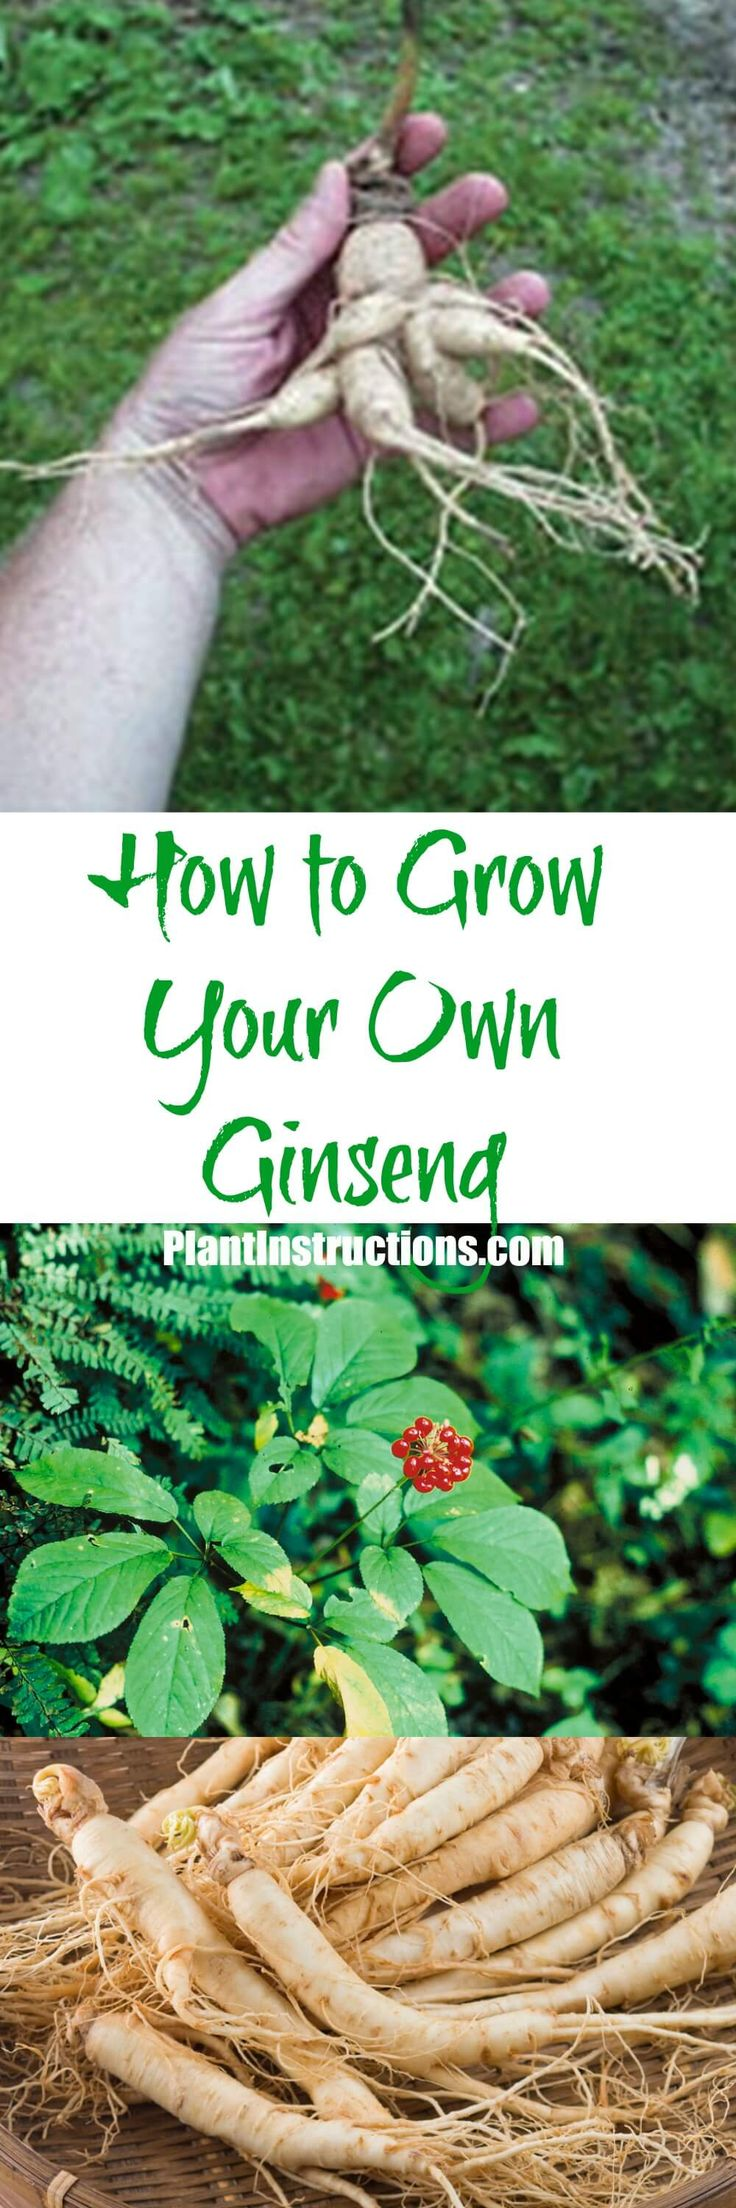 Learn how to grow ginseng with our easy to follow gardening guide! Although hard to find, ginseng is fairly easy to grow and fun too!